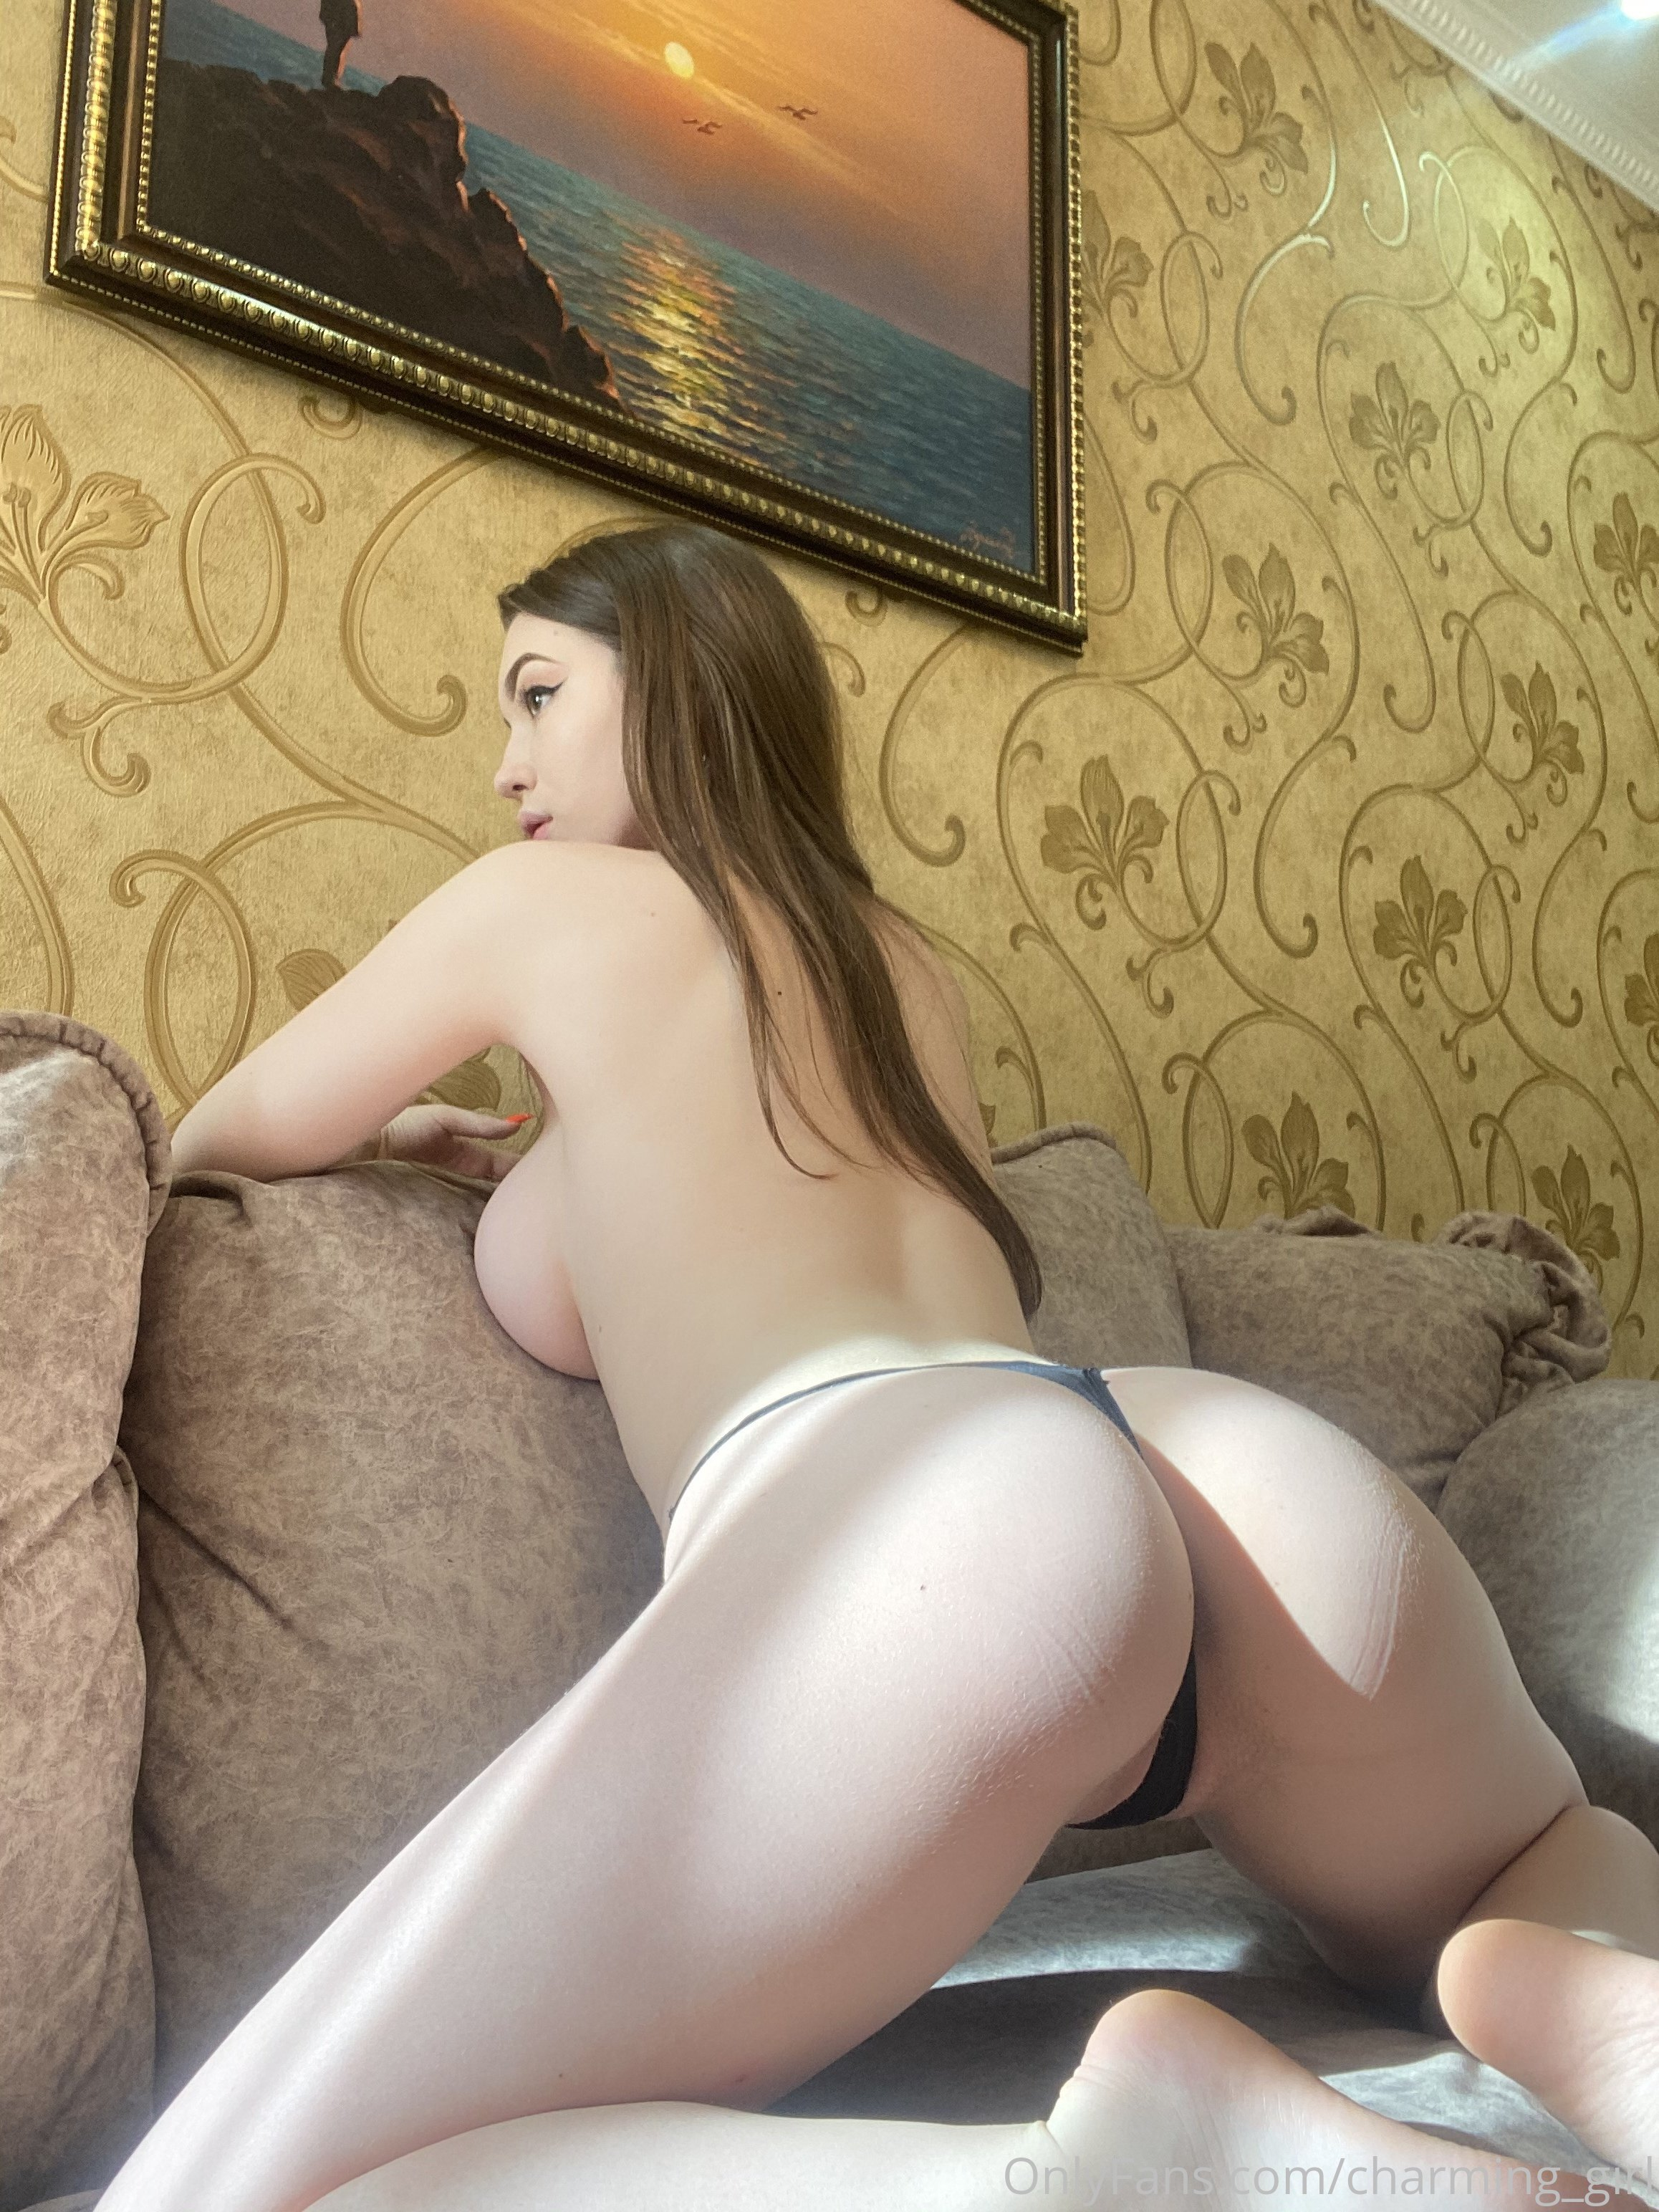 Milana, Charming Girl, Onlyfans 0047